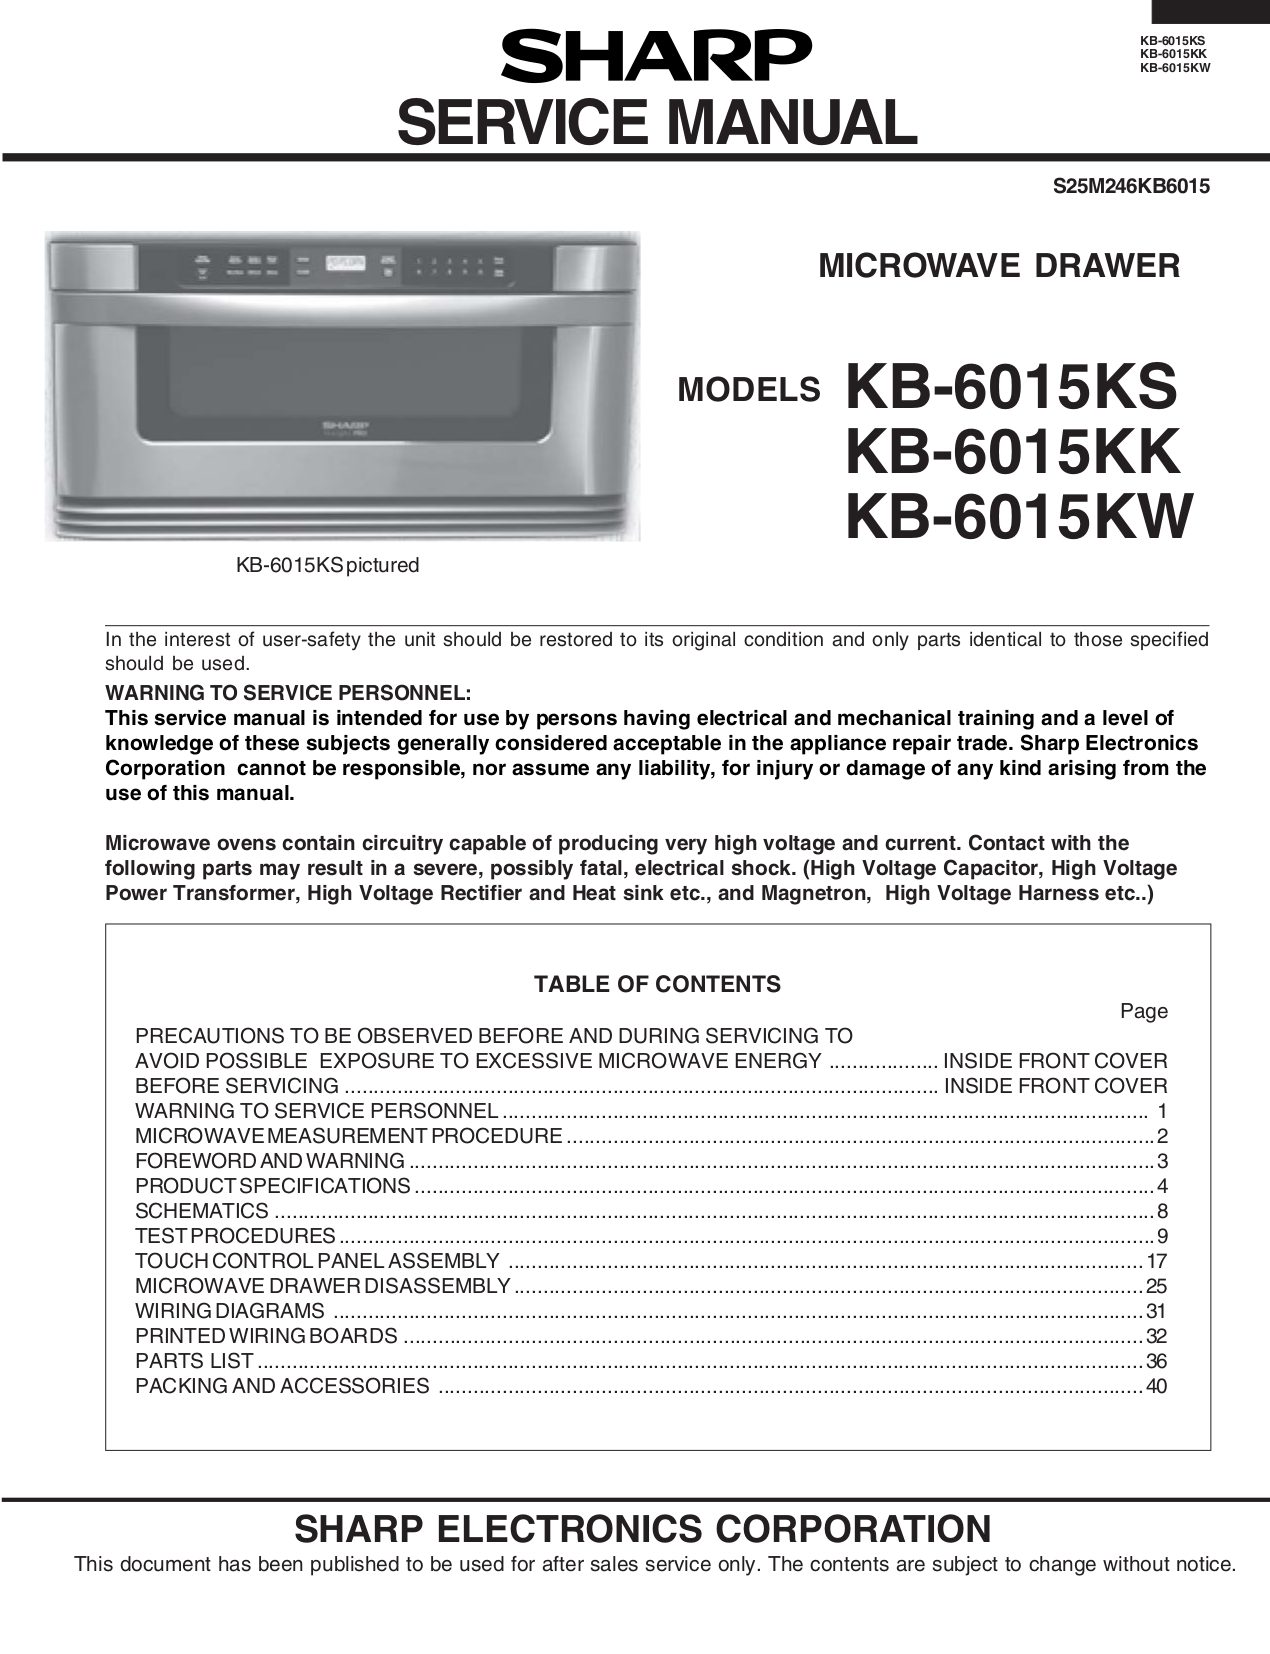 Download Free Pdf For Sharp Kb 6015ks Microwave Manual Drawer Diagram And Parts List Microwaveparts